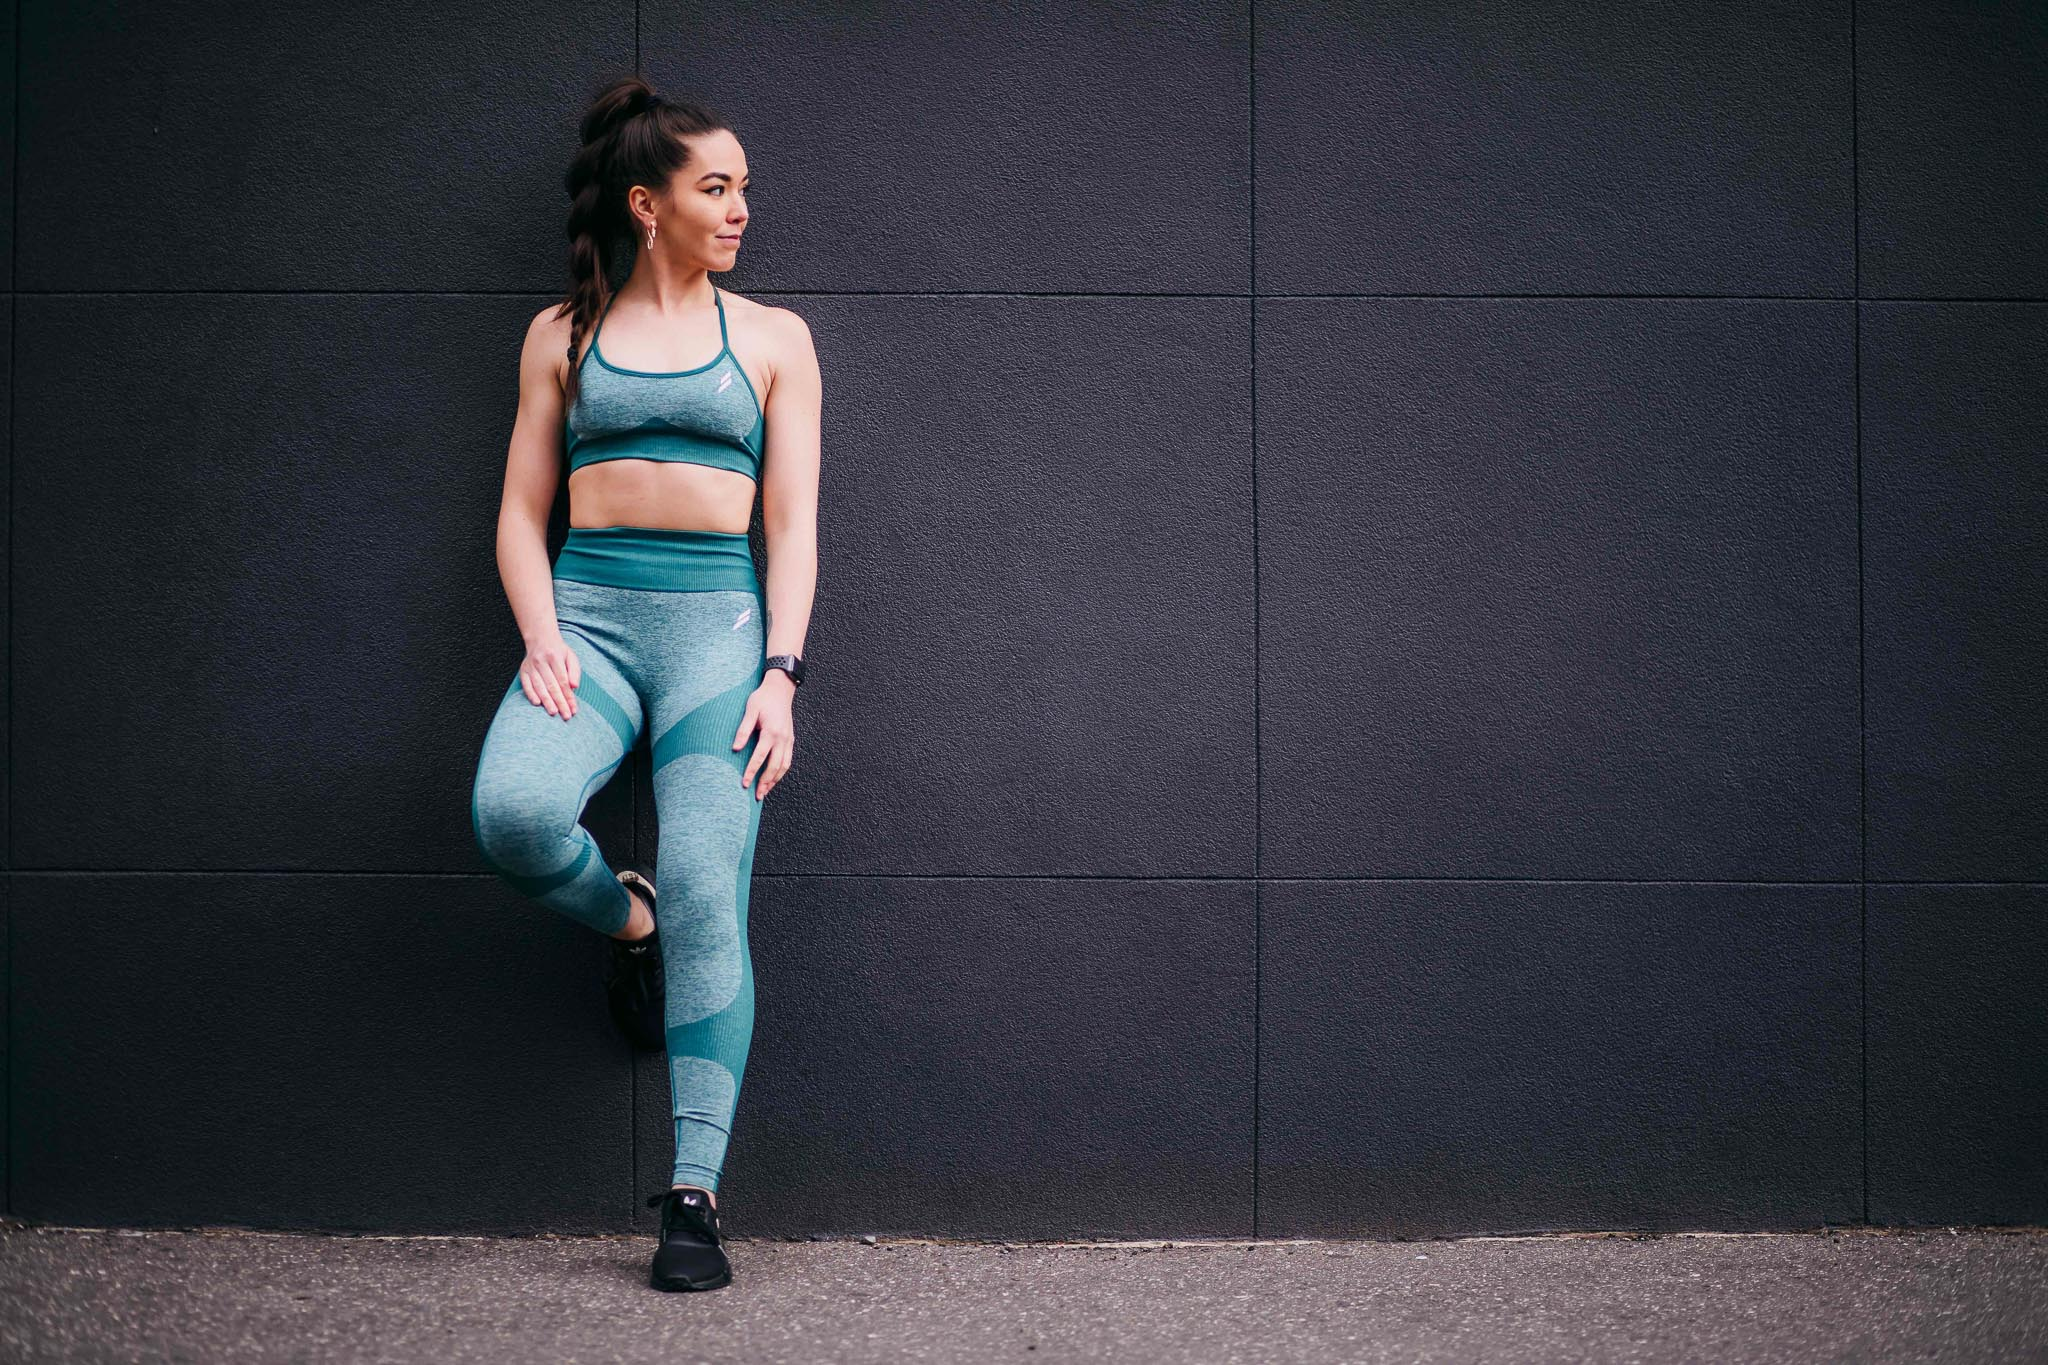 Deborah wearing fitness clothing leaning against a concrete wall